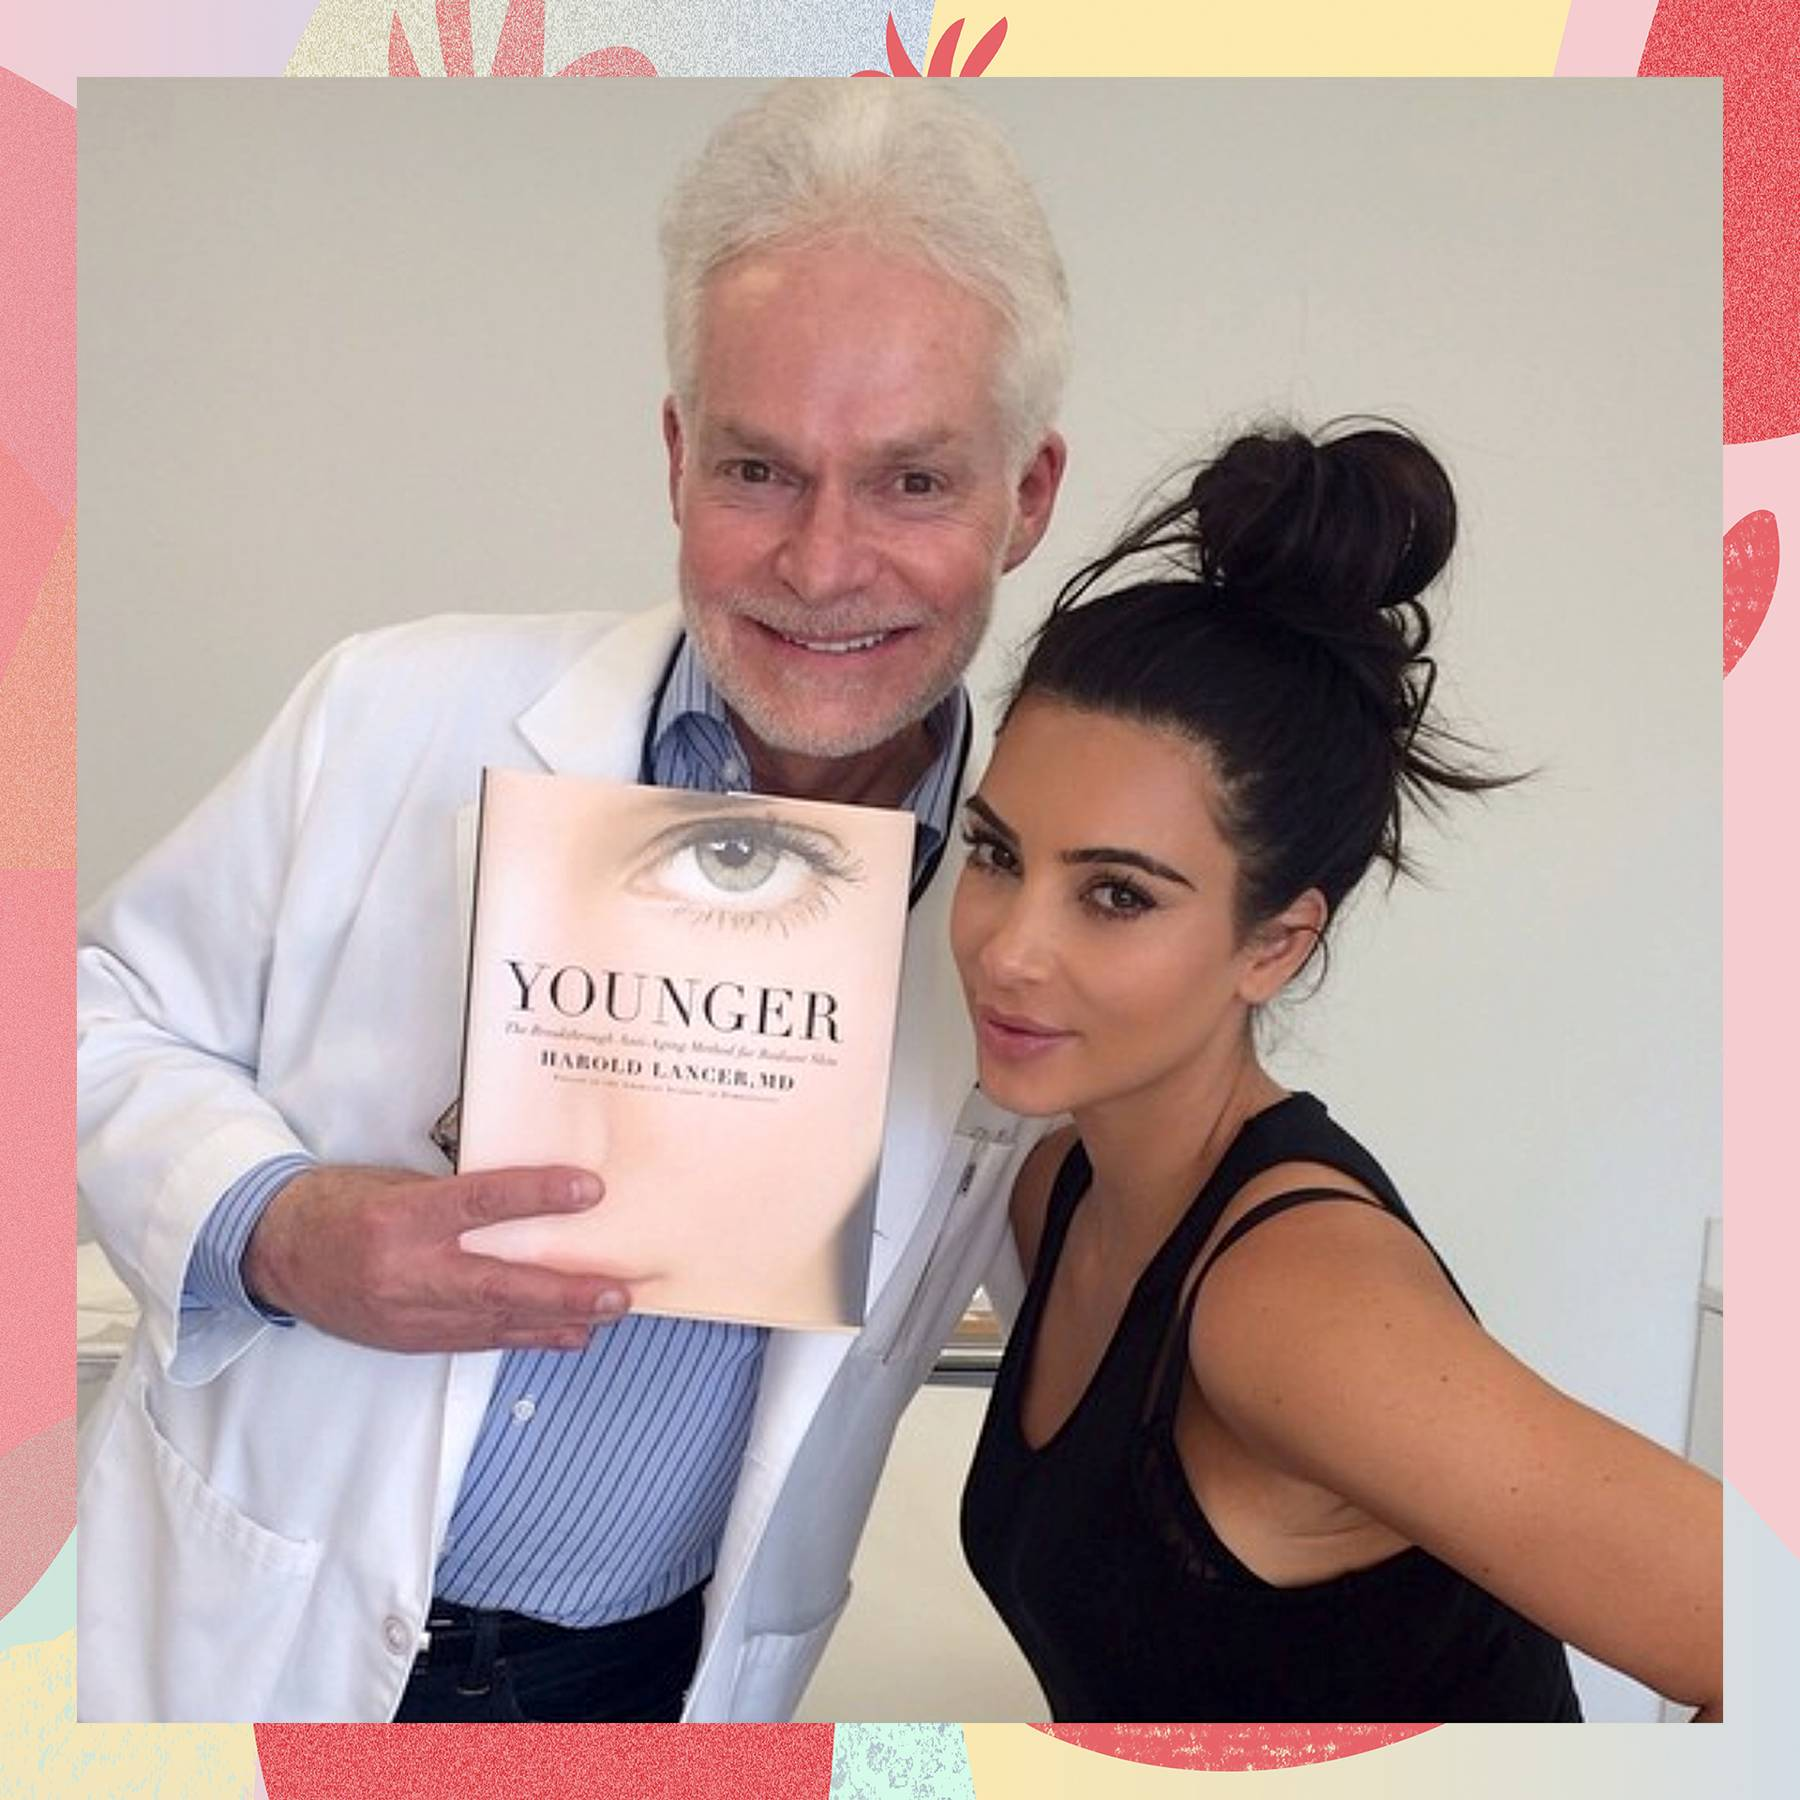 Kim Kardashian's Dermatologist Gave Me A Much-Needed Wake-Up